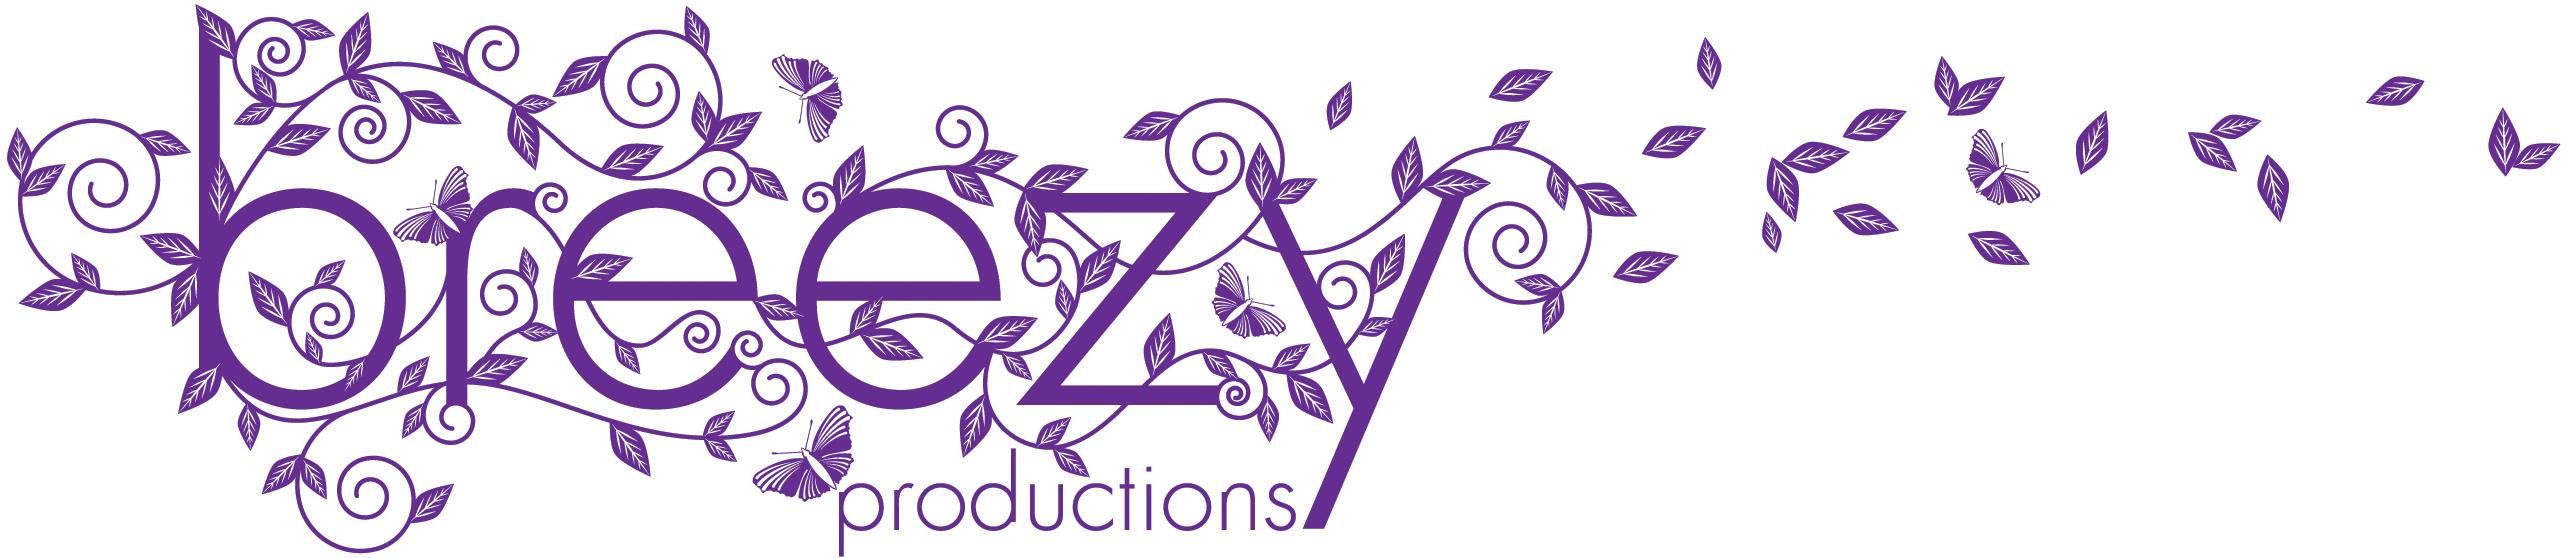 Breezy Productions